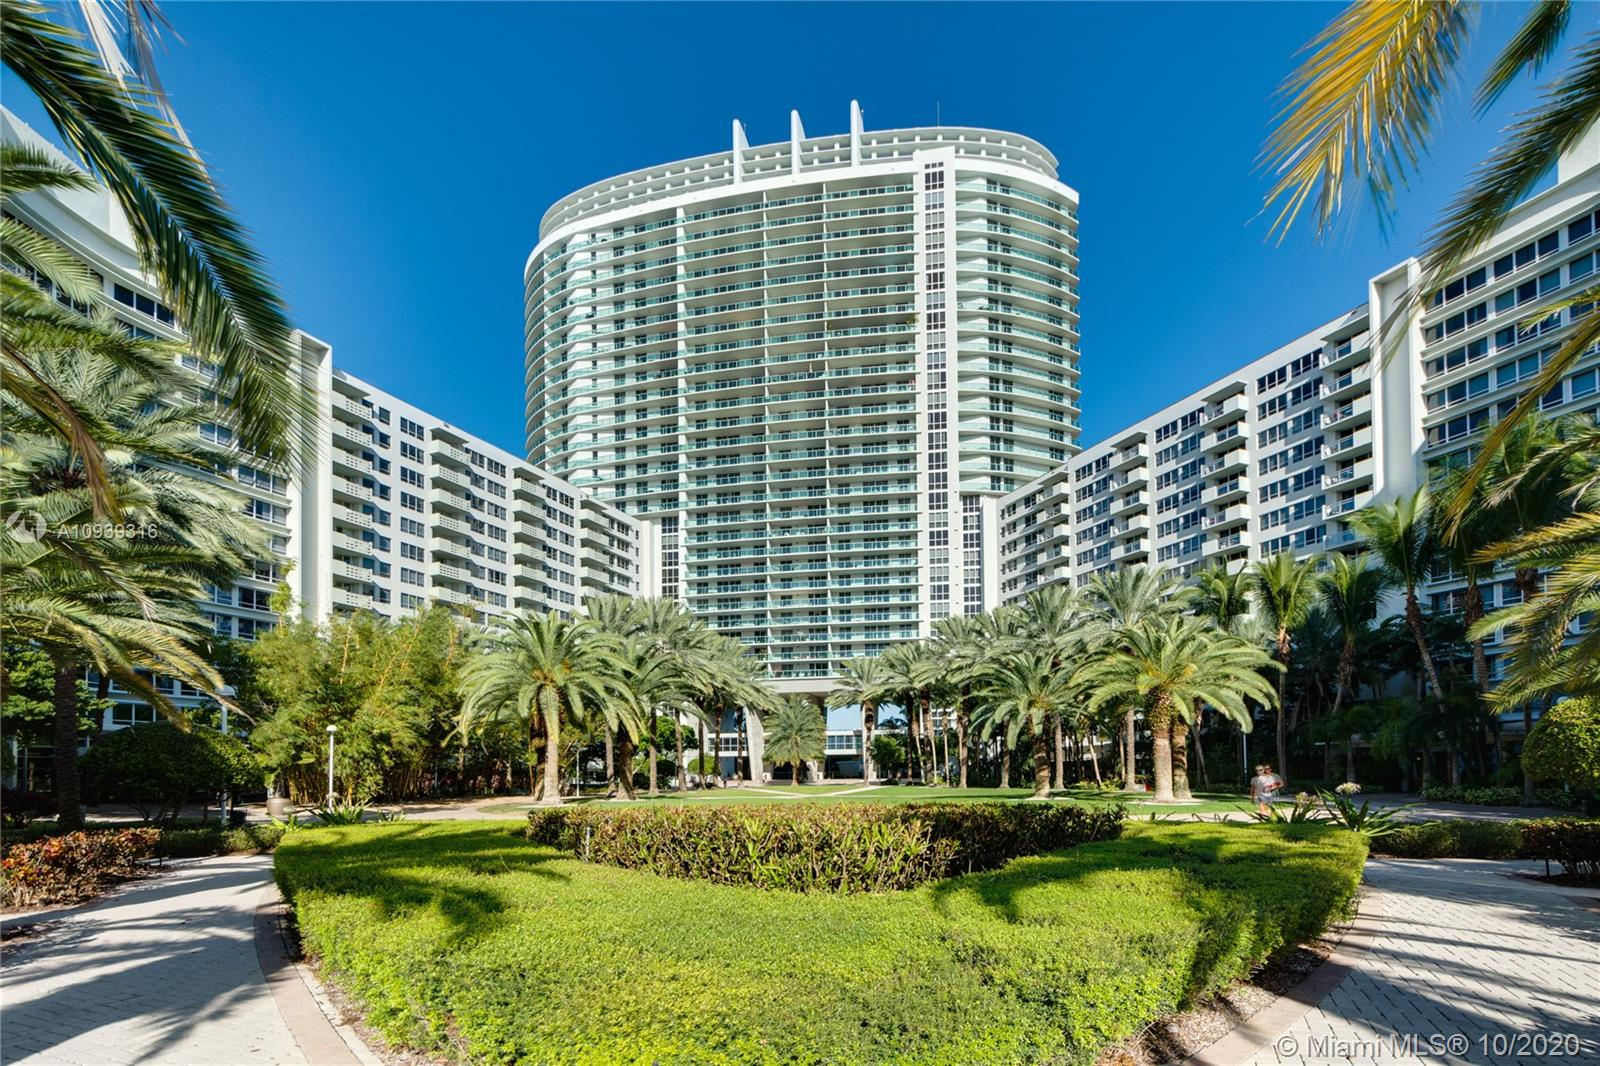 Flamingo South Beach #652S - 1500 Bay Rd #652S, Miami Beach, FL 33139